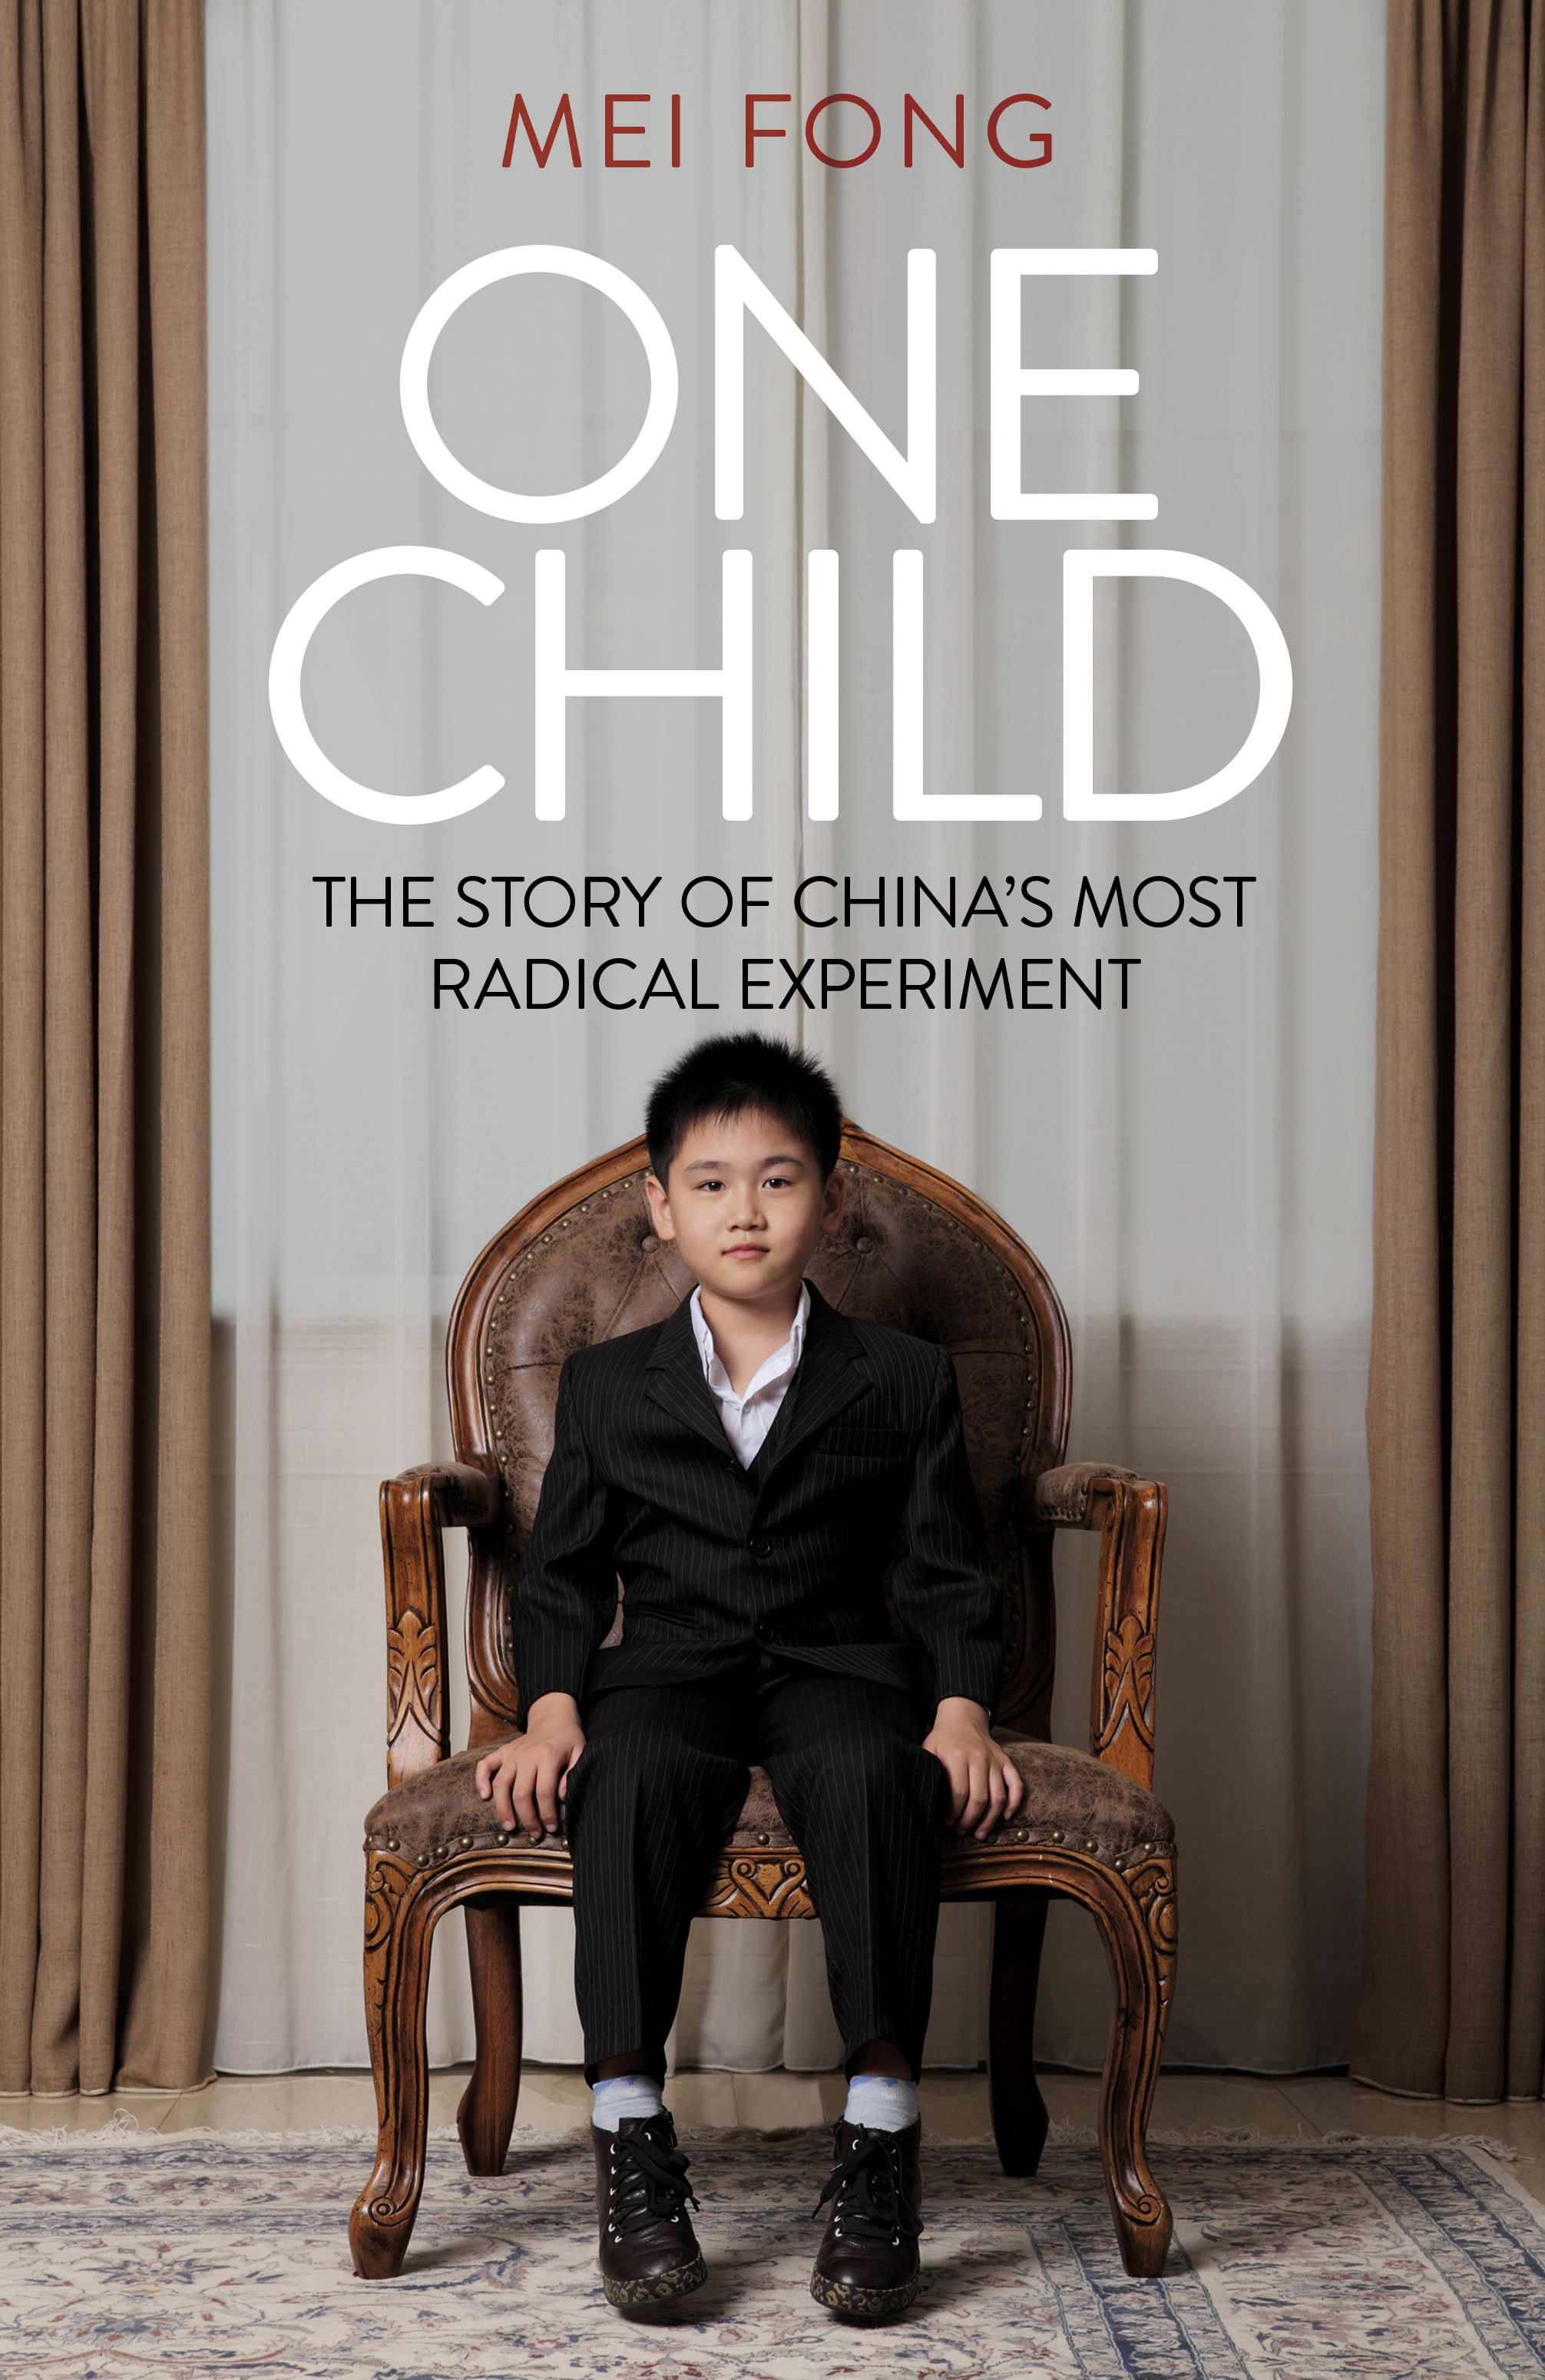 chinas one child policy success or failure essay Why was china's one child policy a success is chinas one child policy a failure or a success why and how more questions.